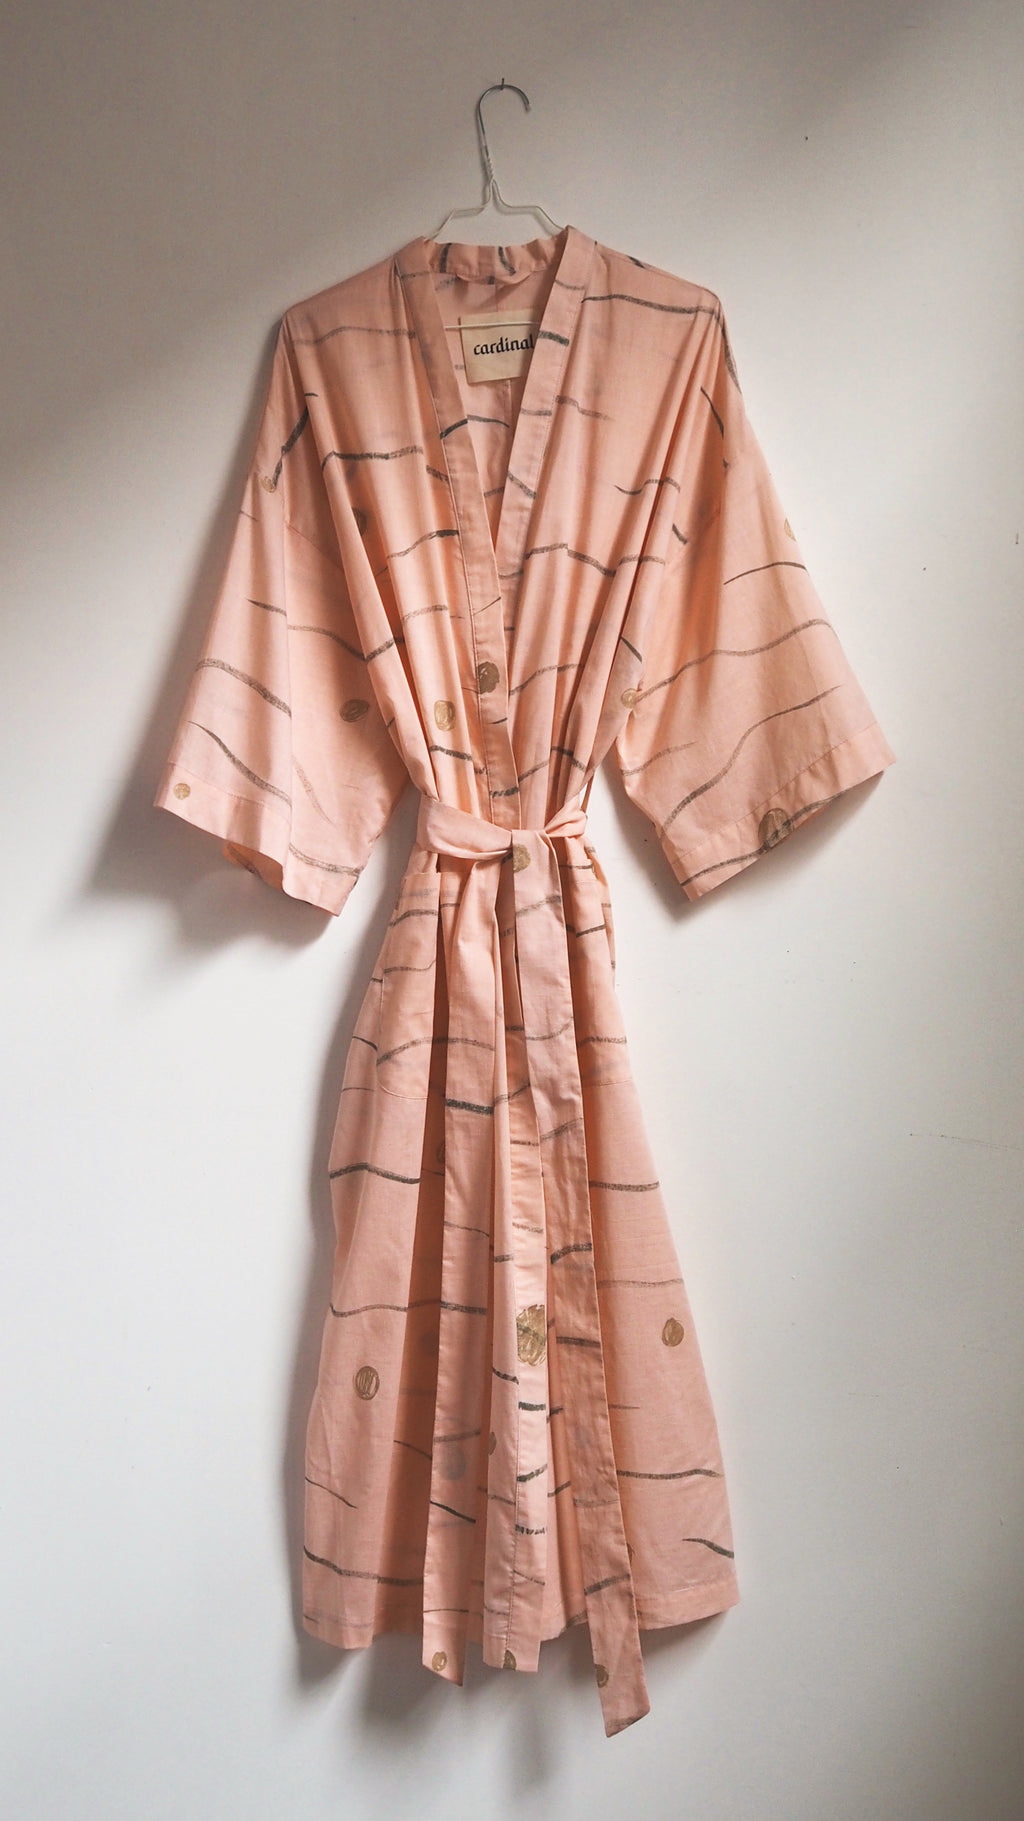 ROBE / hills and dots on blush